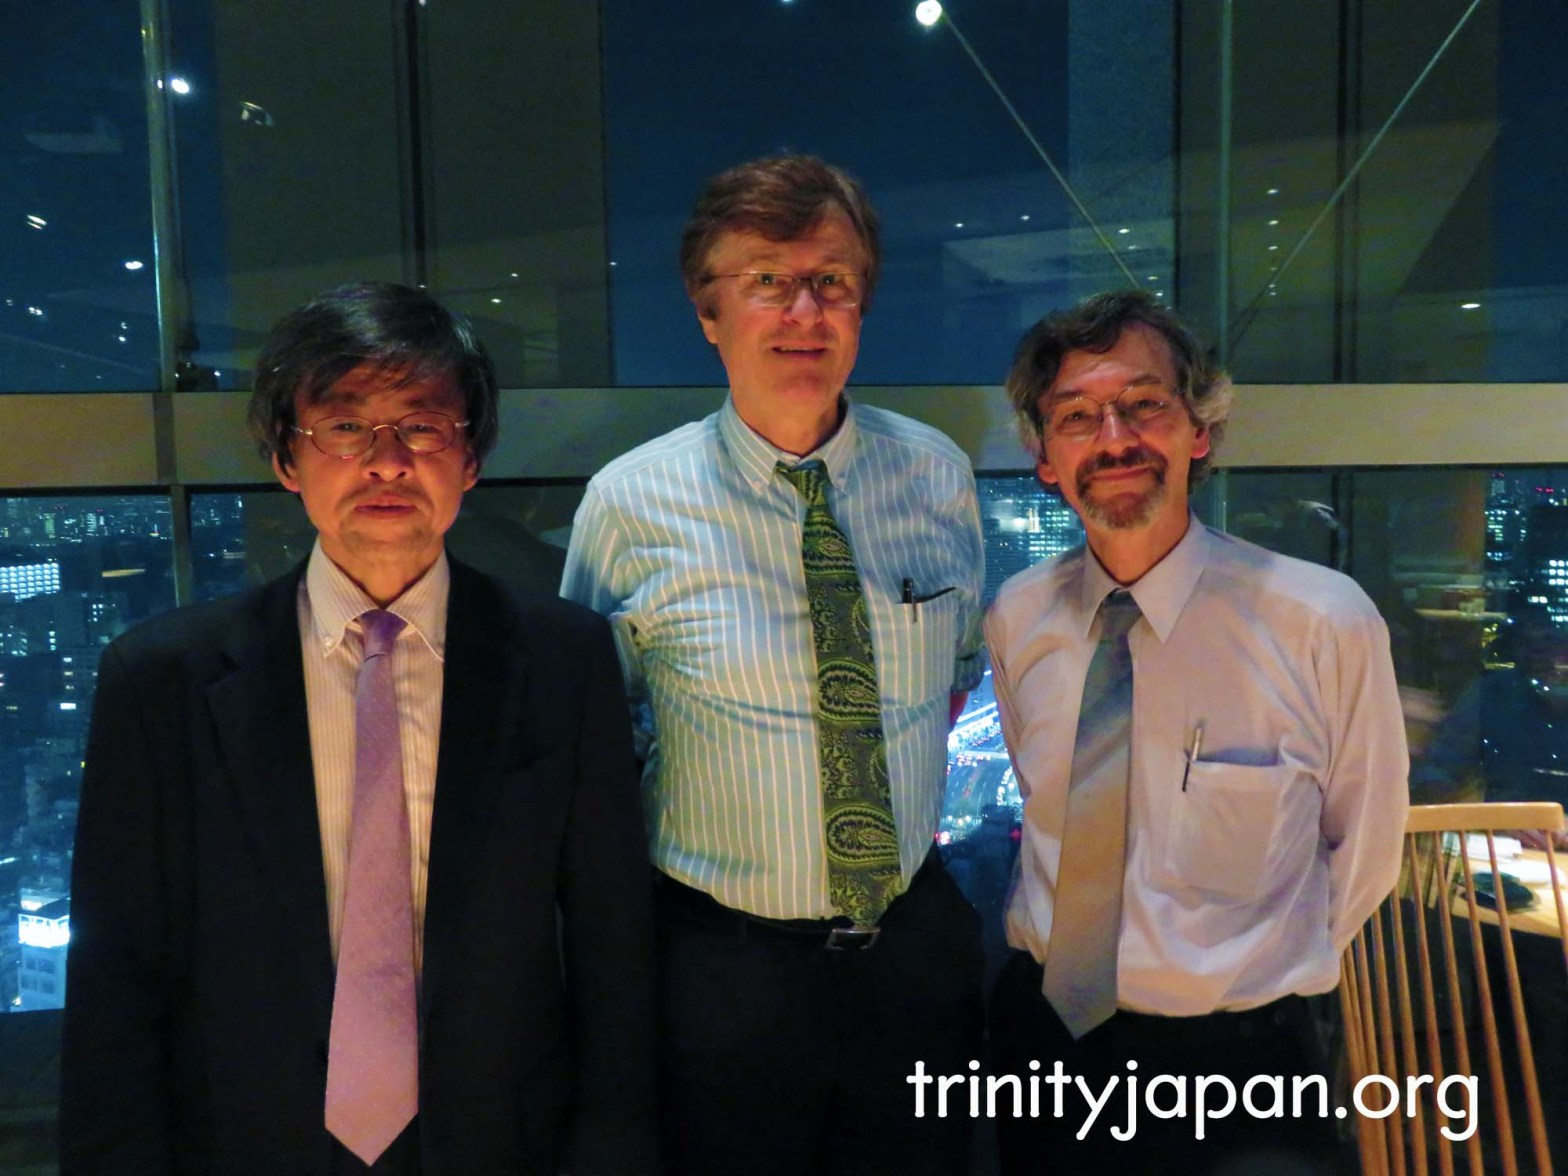 Trinity in Japan Meeting on Friday 27 May 2016 at 19:00 in Tokyo